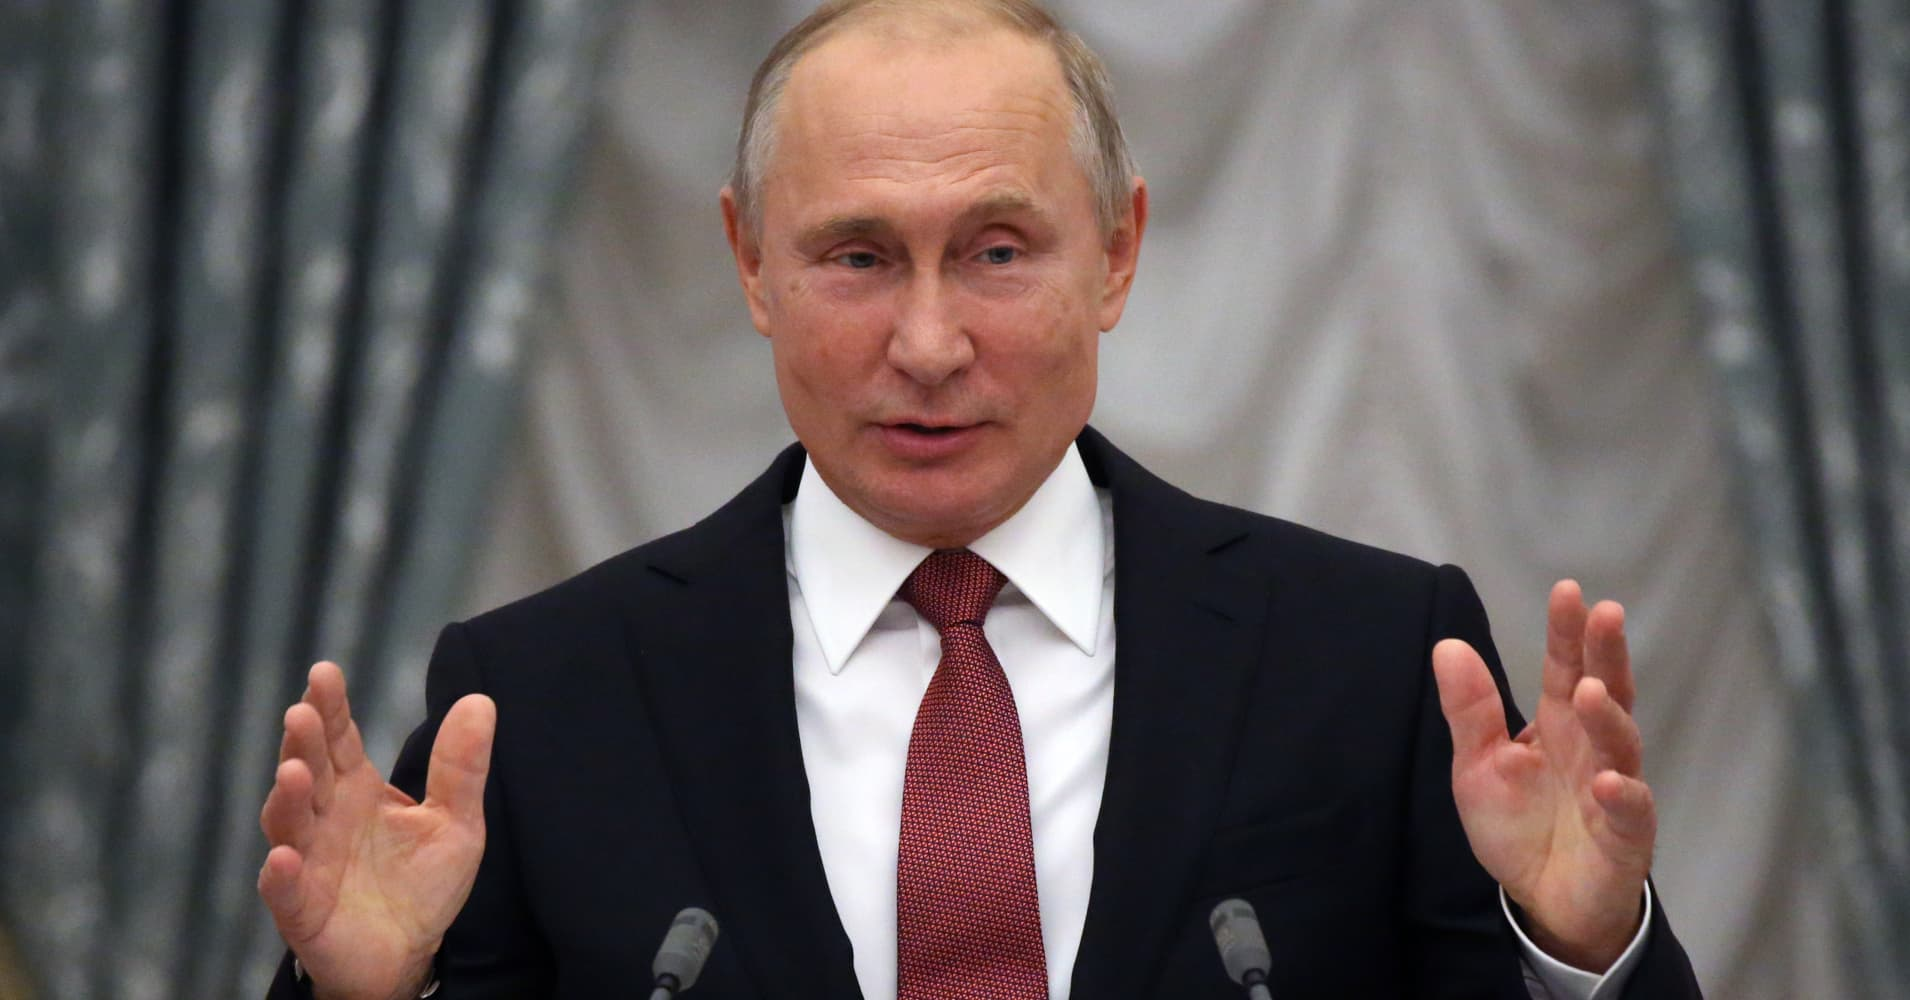 Putin says Ukraine provoked Russia into ship seizure as part of a 'dirty game'